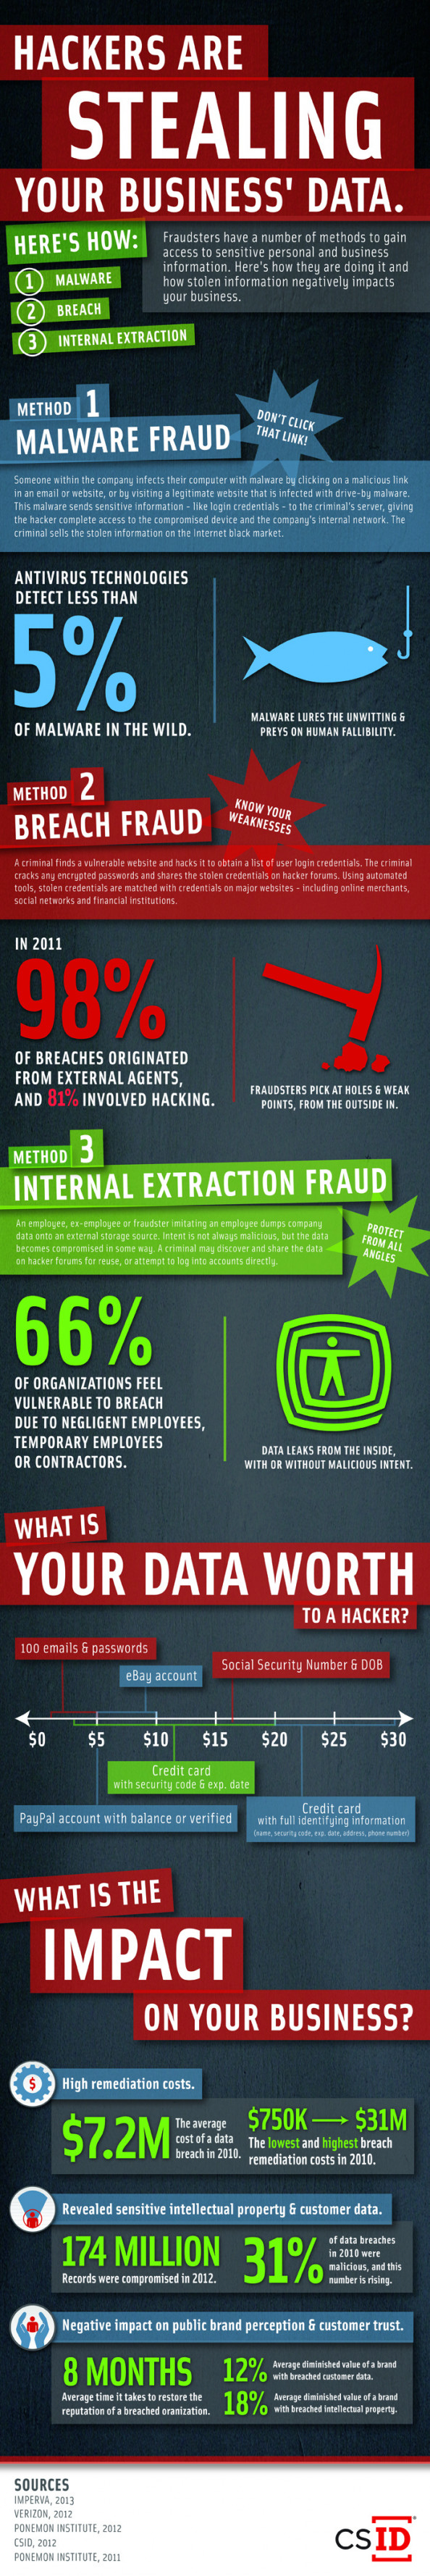 Hackers Are Stealing Your Business' Data Infographic